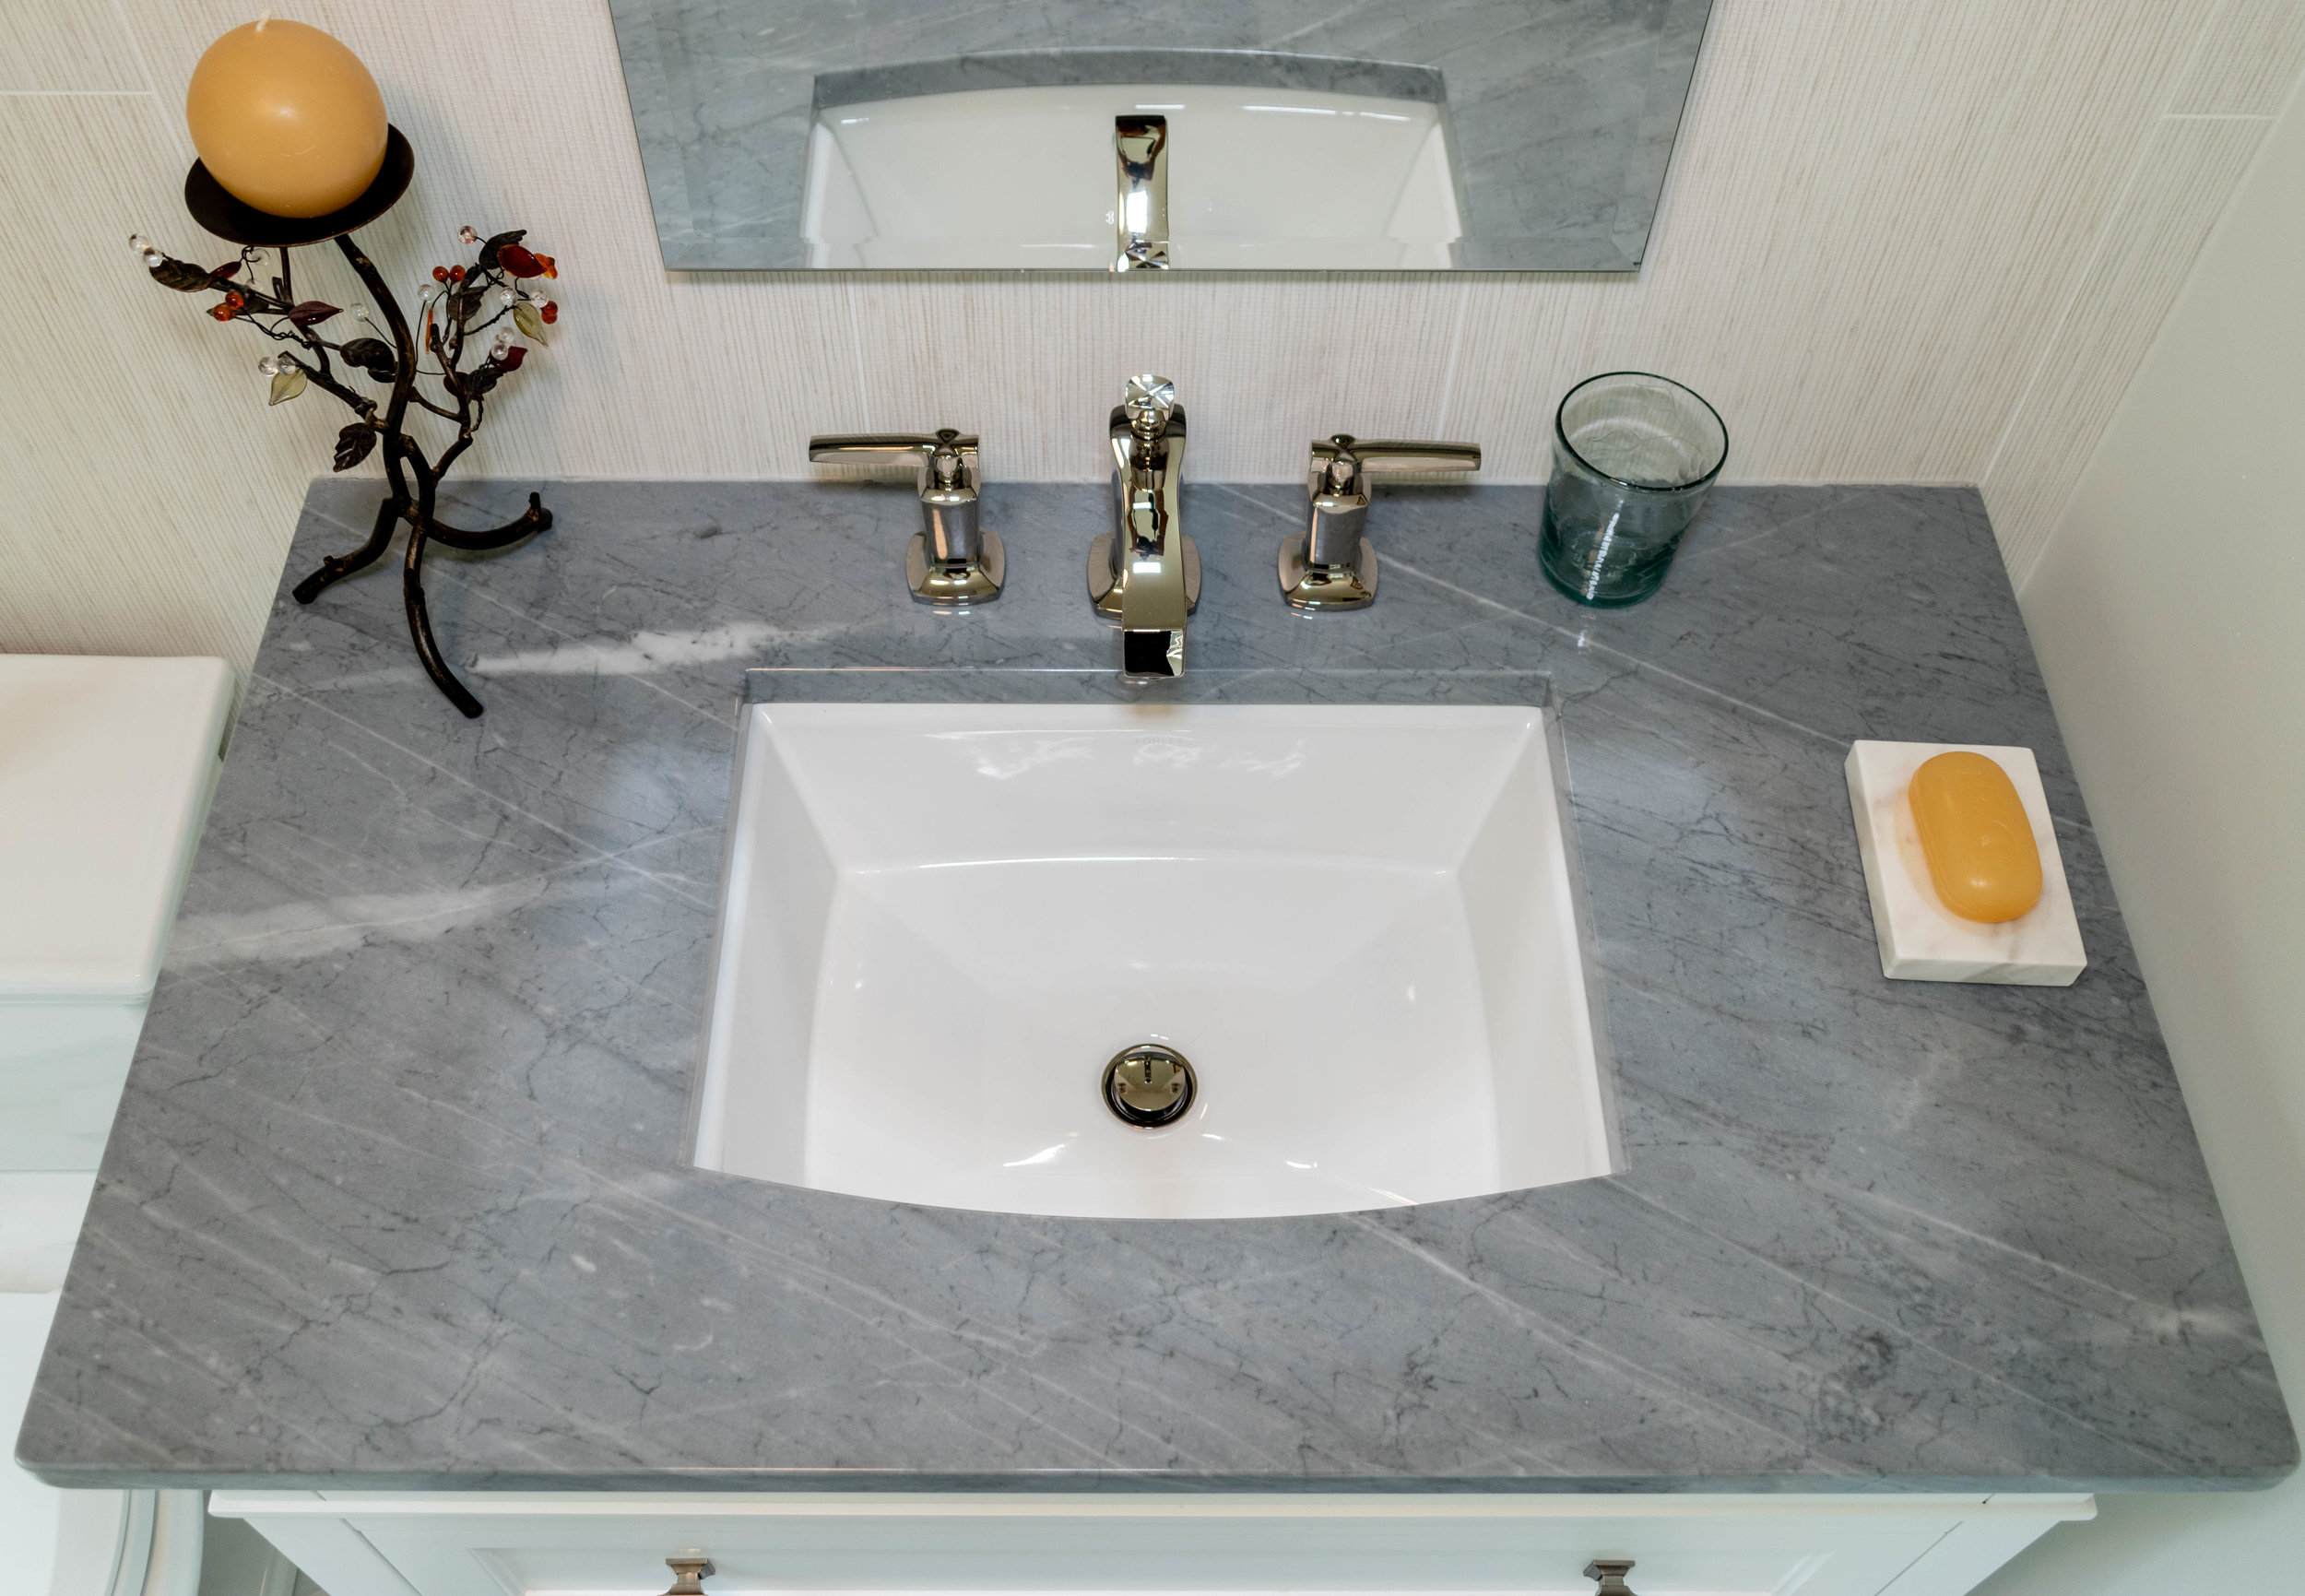 Material: Bardiglio  Thickness, Finish & Stone Type: Bardiglio 3CM Polished Marble  Edge: Eased  Sink: Client's Sink: Under-Mount